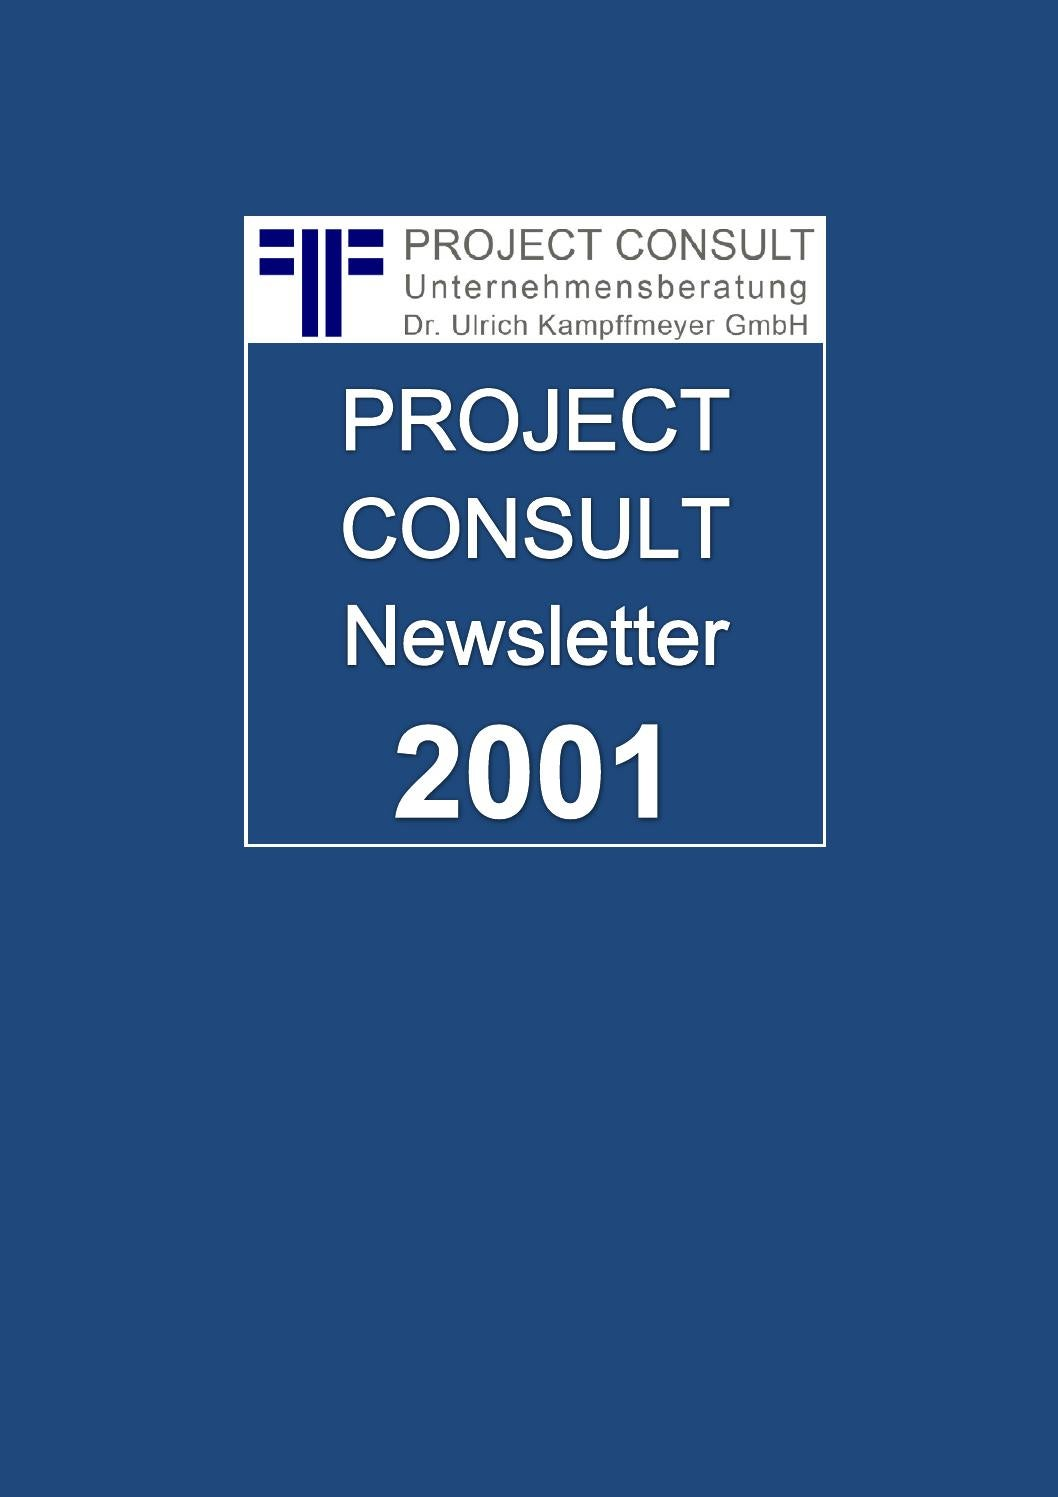 DE] PROJECT CONSULT Newsletter 2001 | PROJECT CONSULT ...